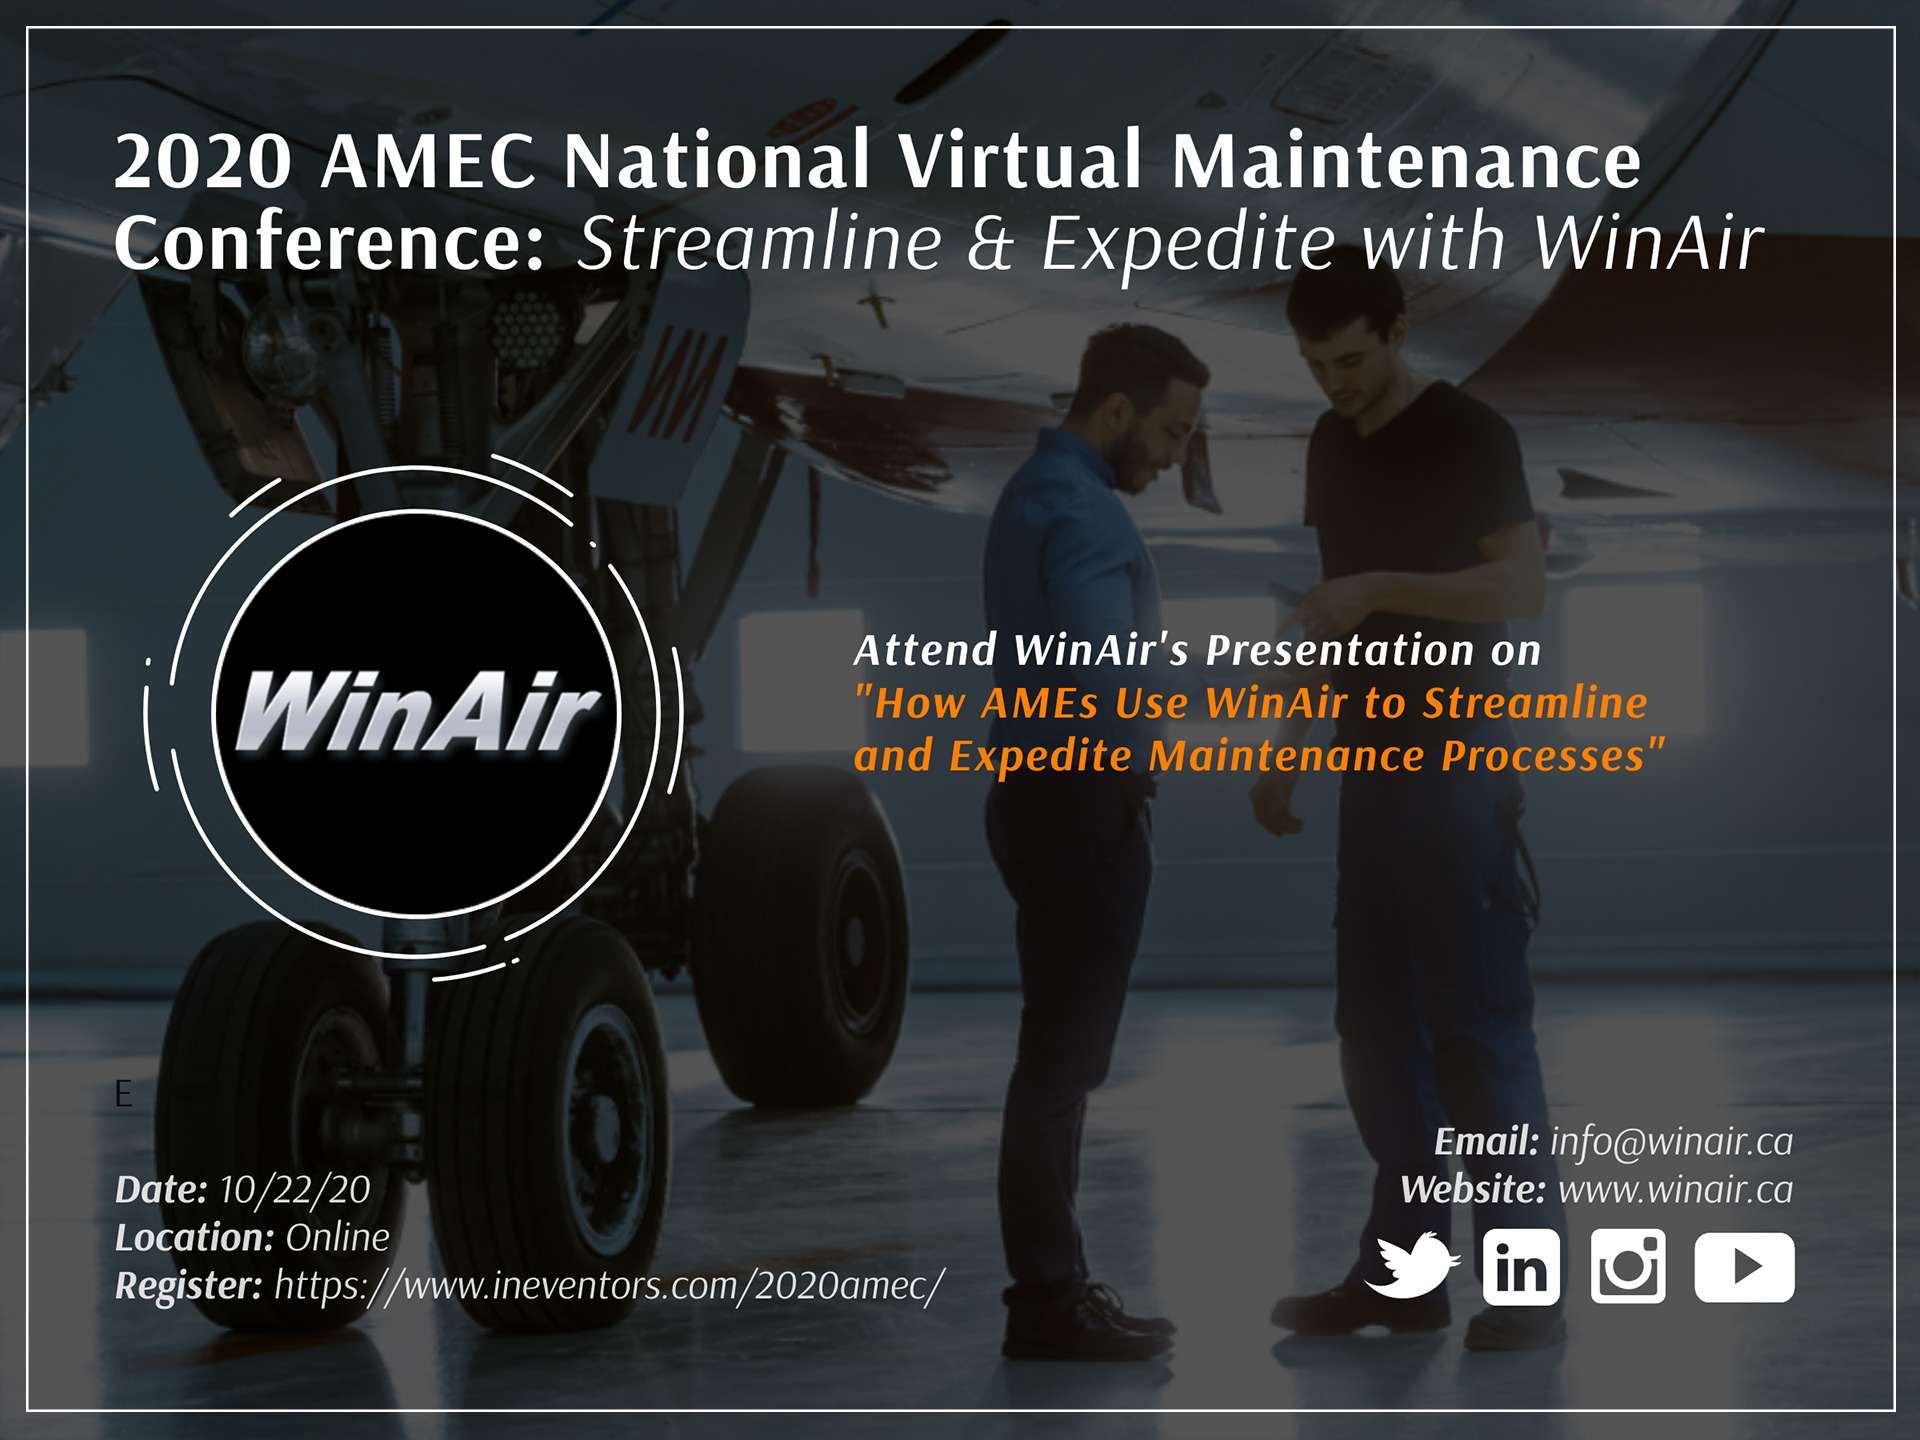 WinAir Signed On for 2020 AMEC Virtual Maintenance Conference - Promotional Image